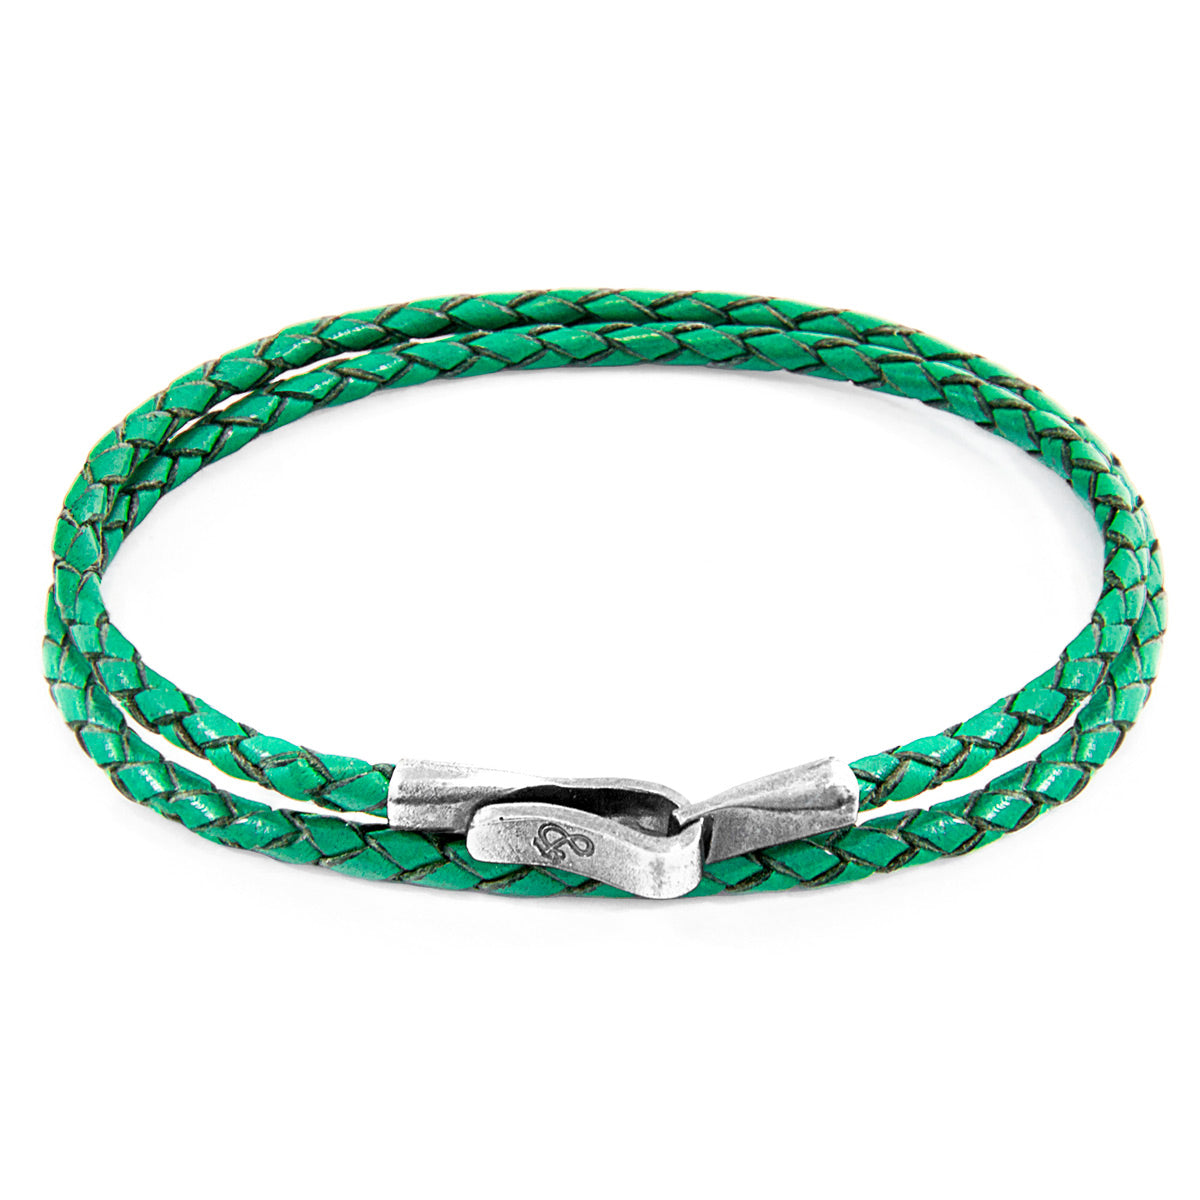 Fern Green Liverpool Silver and Braided Leather Bracelet